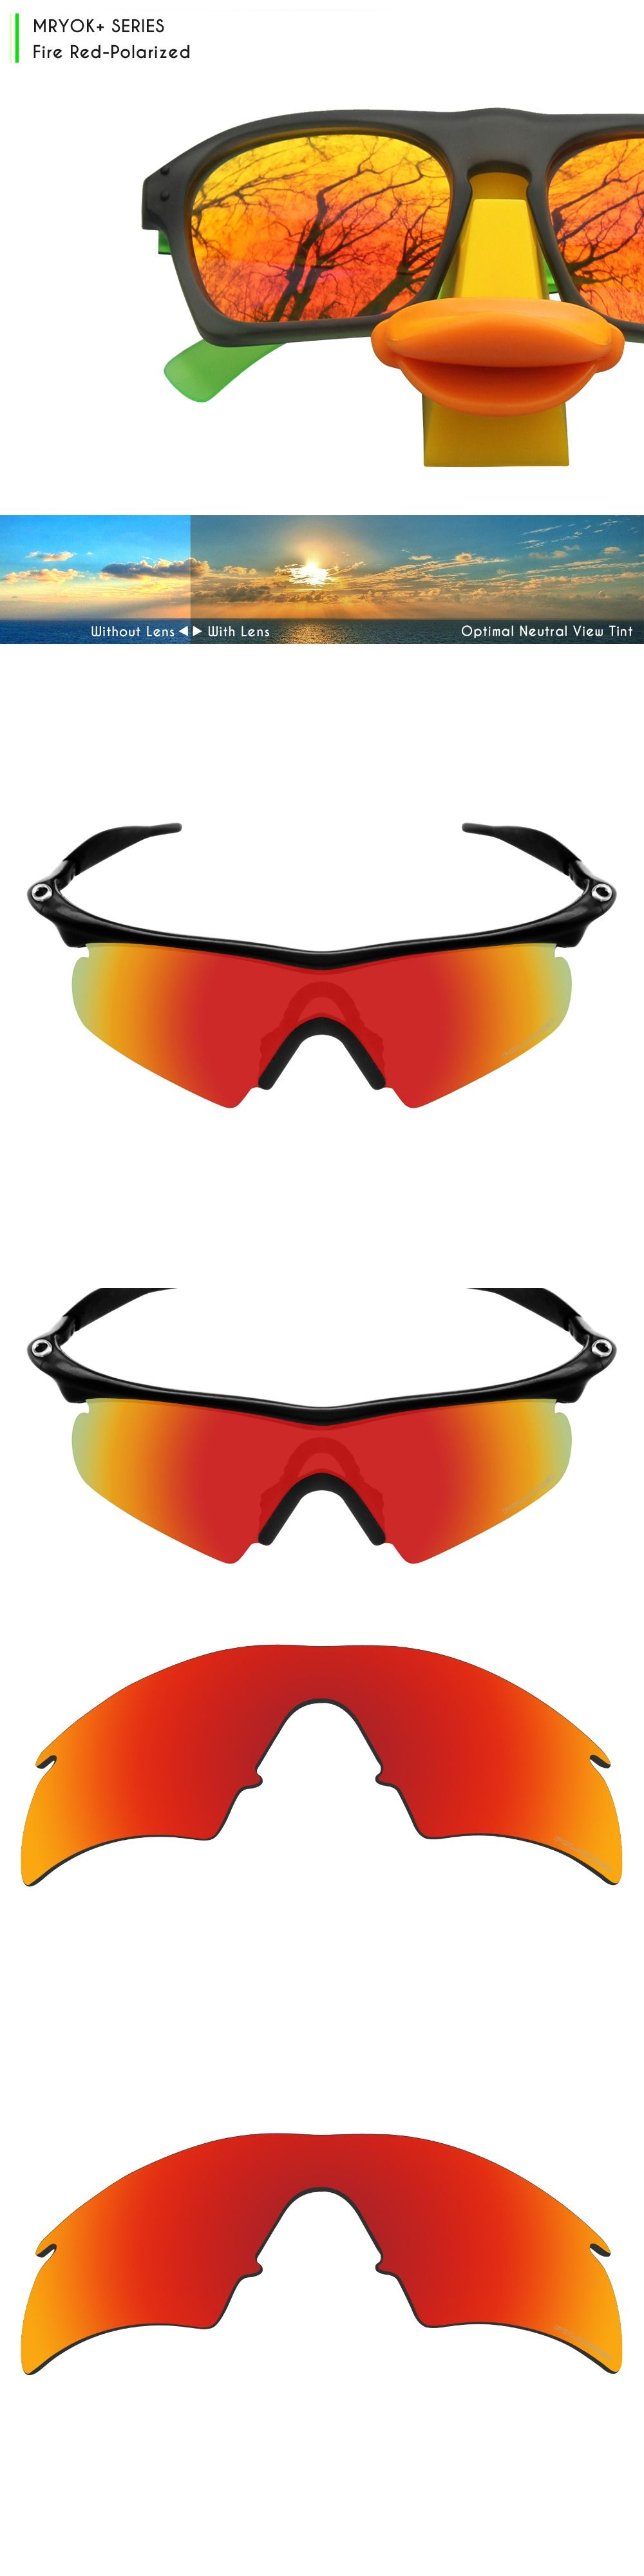 Mryok+ POLARIZED Resist SeaWater Replacement Lenses for Oakley M ...